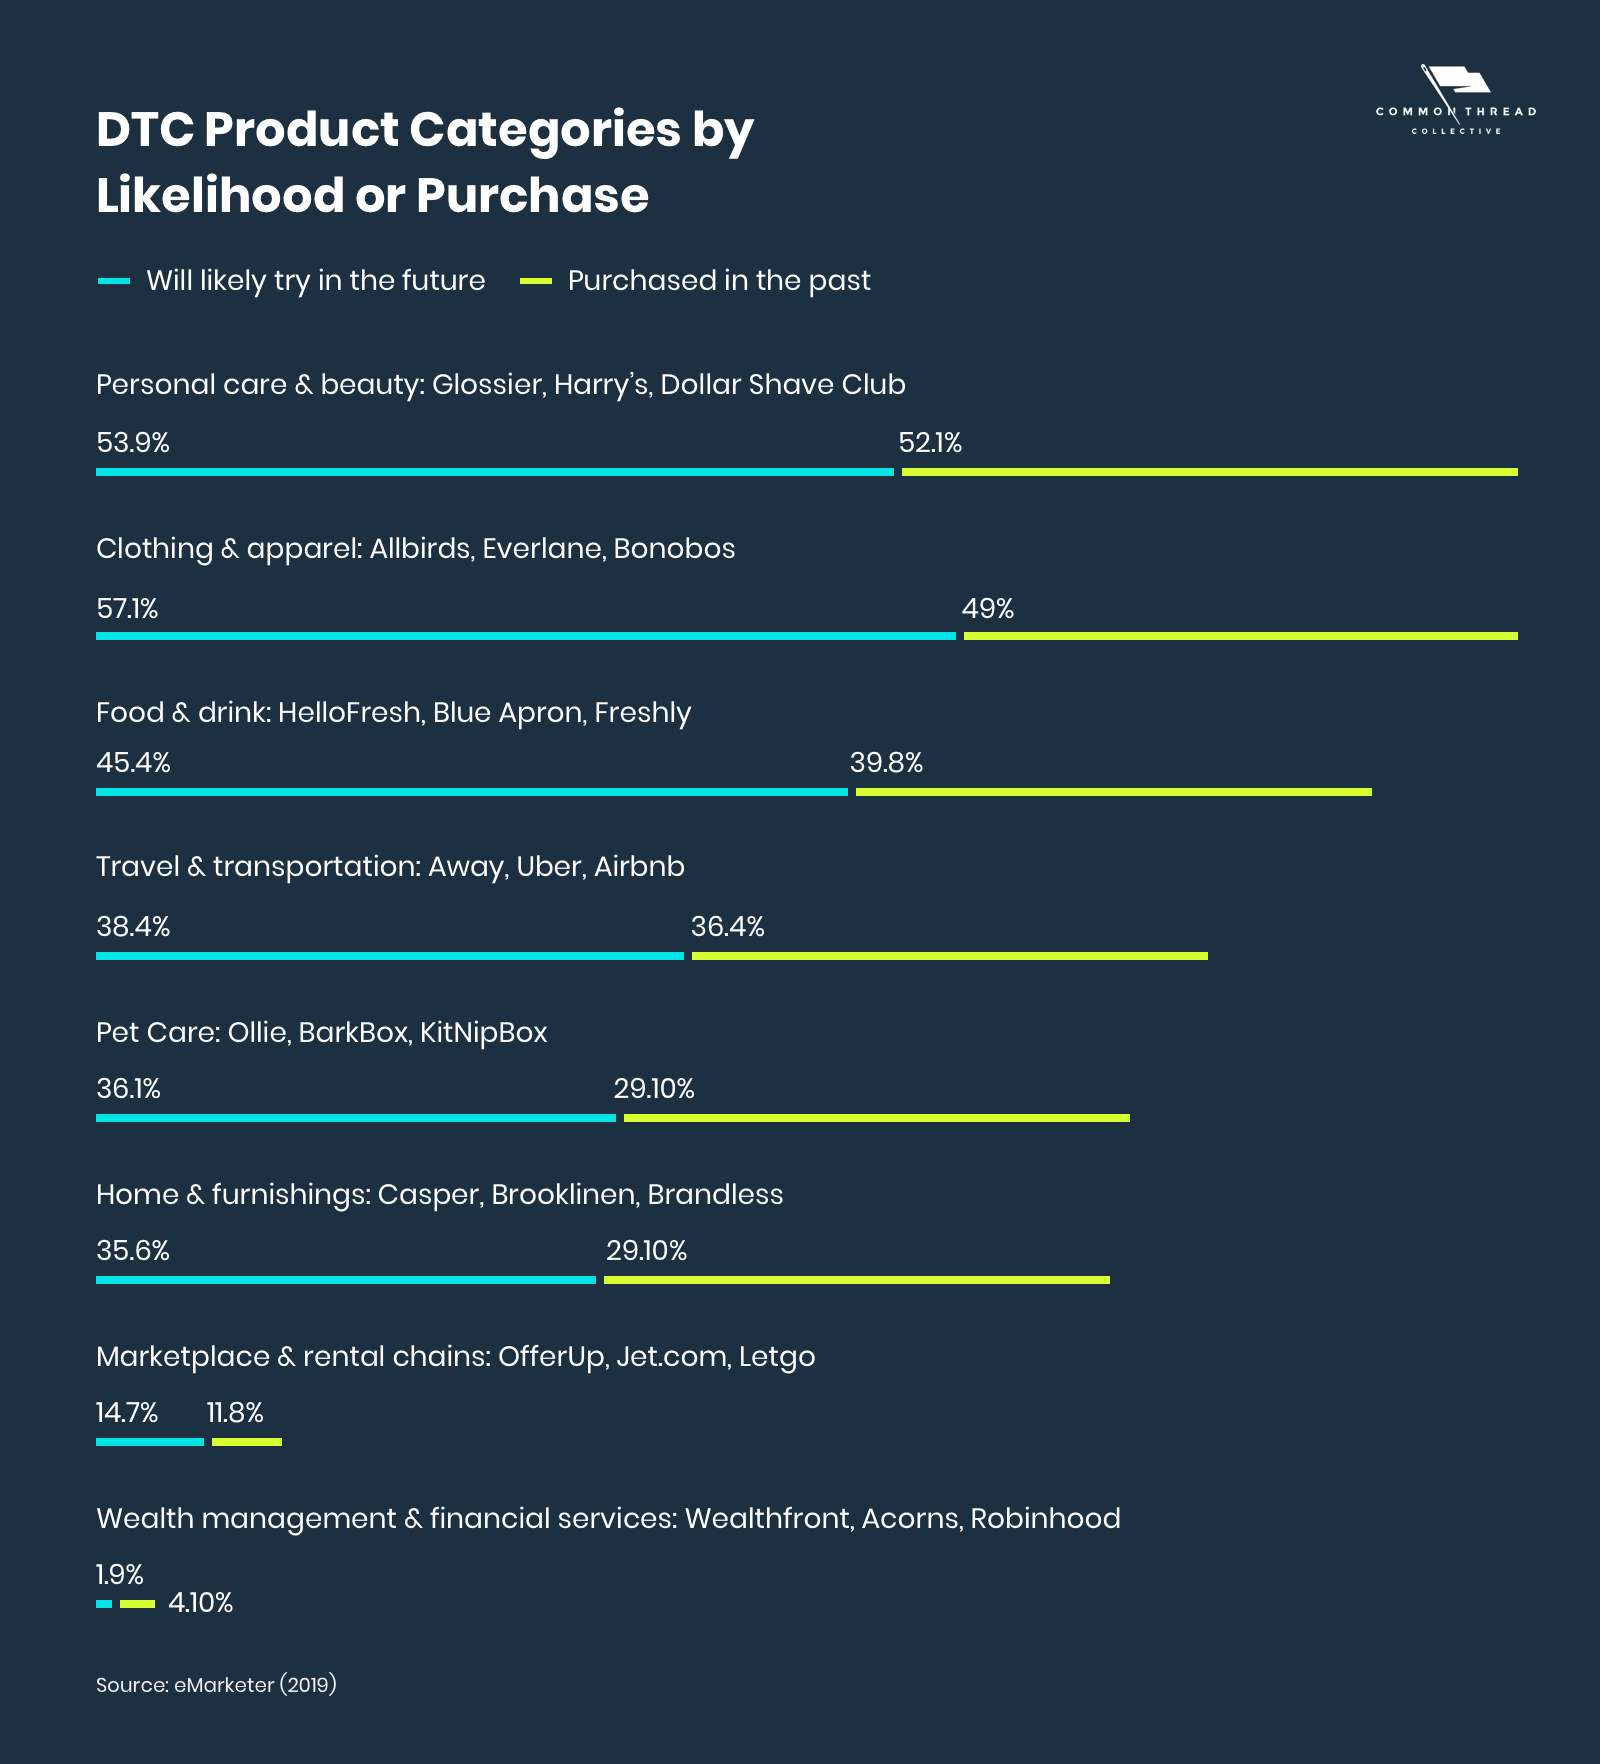 DTC Product Categories by Likelihood or Purchase